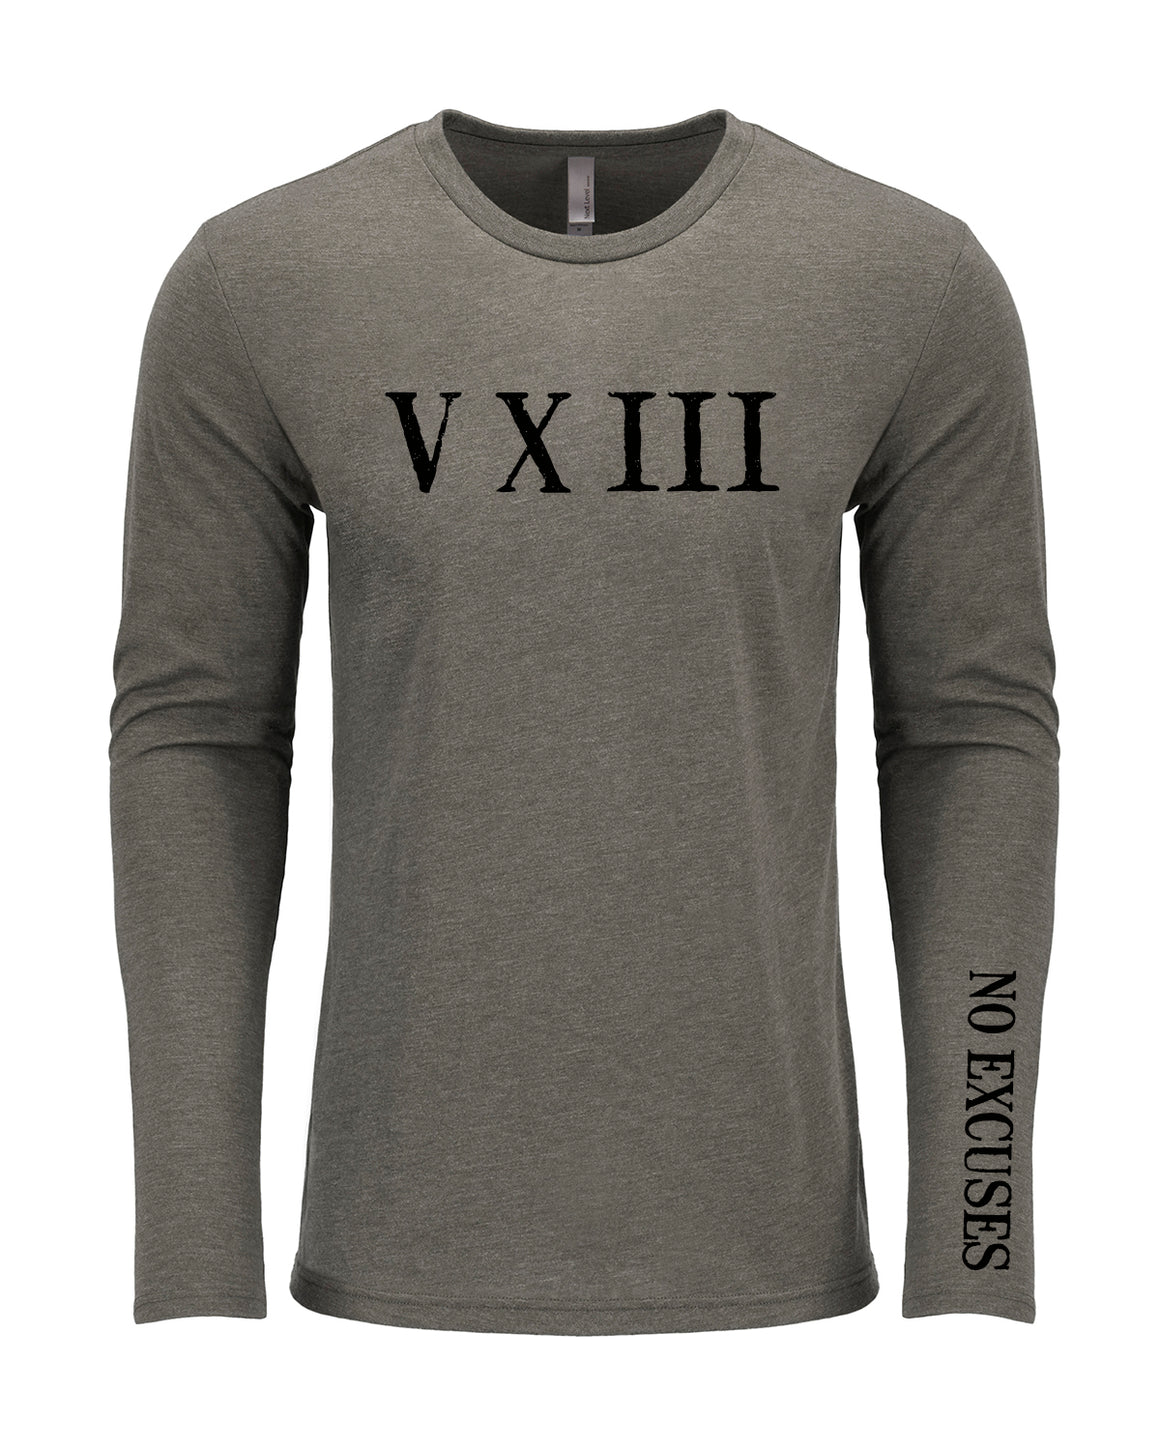 Roman Numeral Long Sleeve Shirt (preorder)